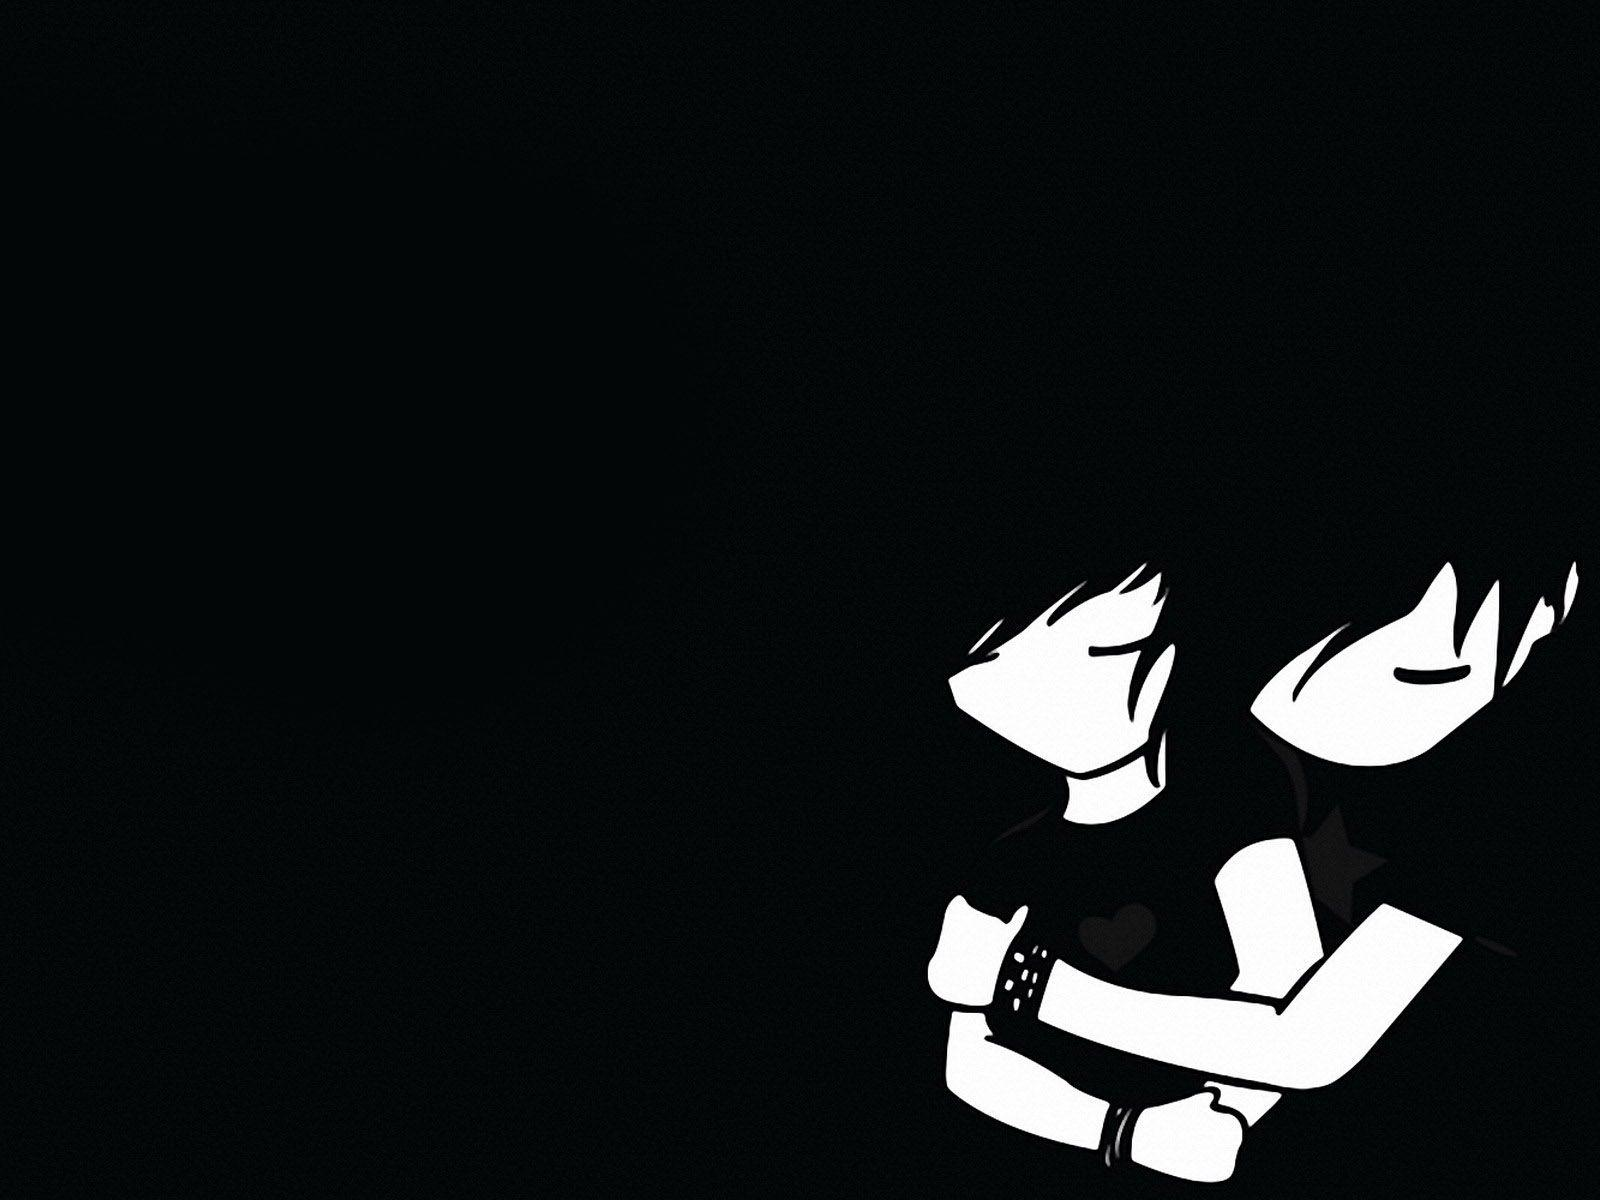 Anime Black And White Boy Wallpapers Wallpaper Cave